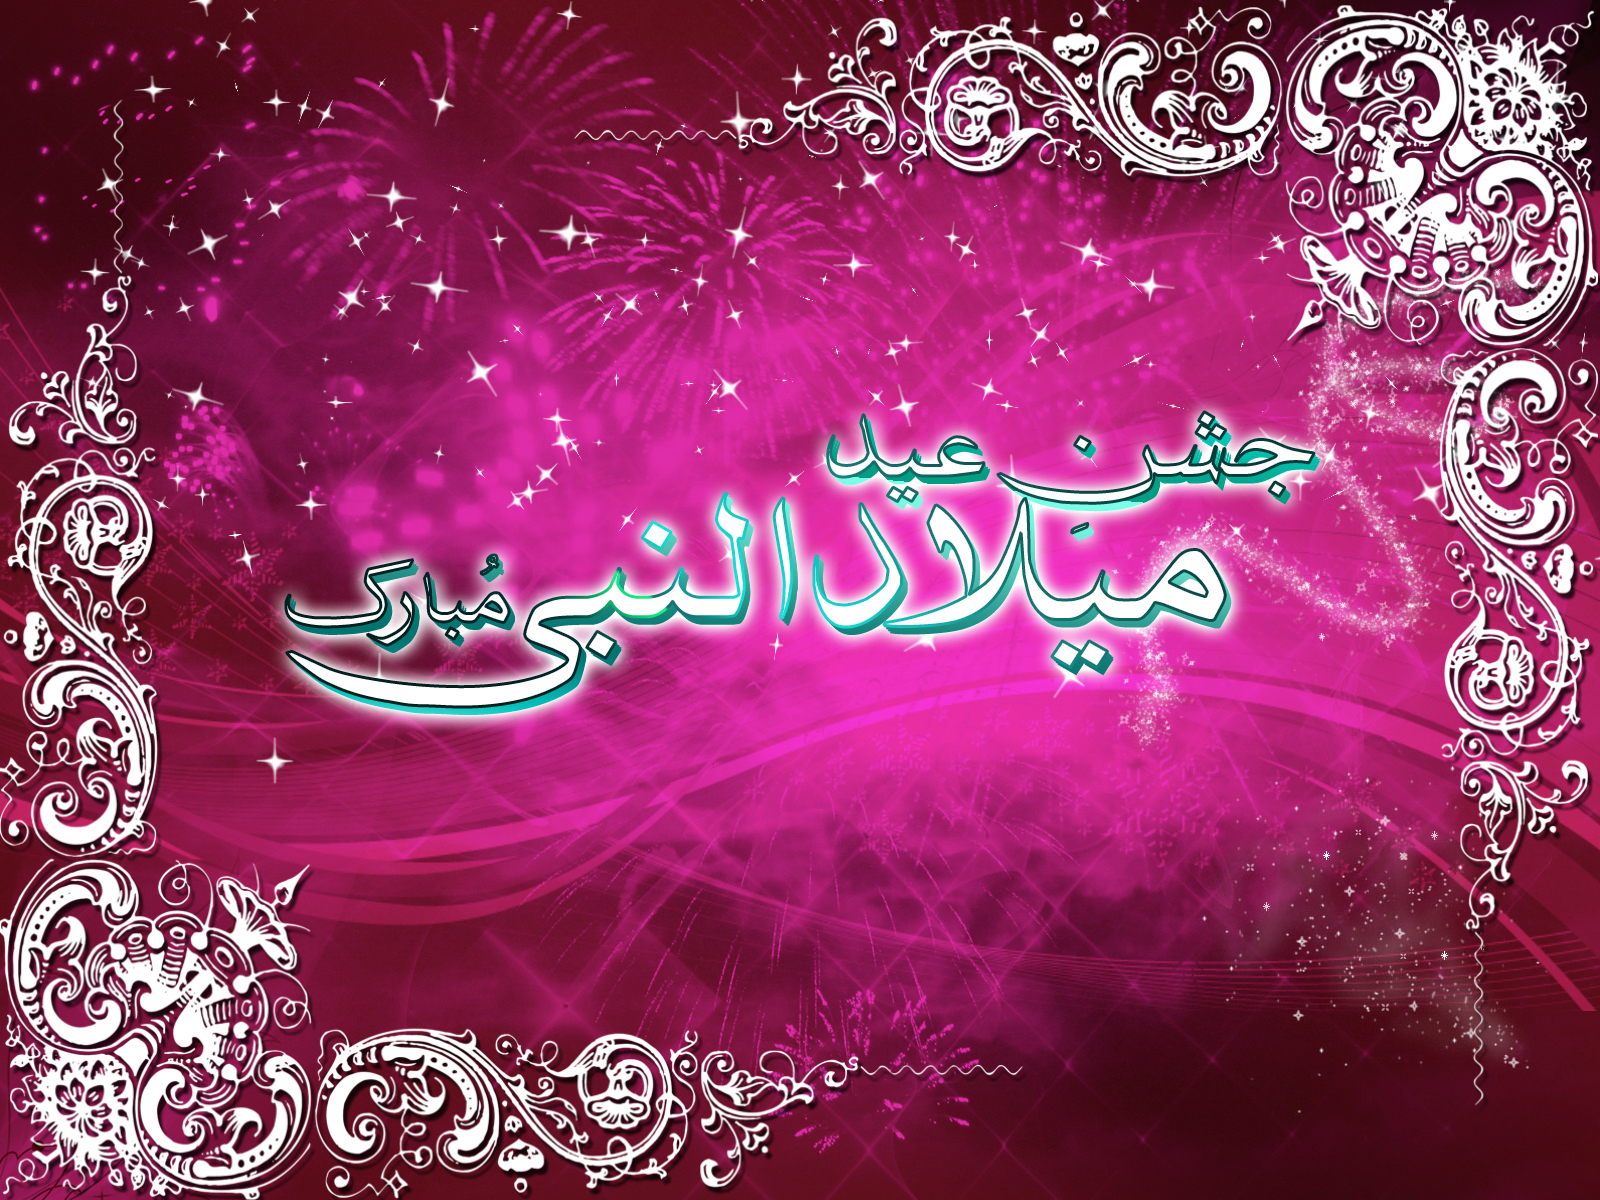 12 Rabi Ul Awal images Wallpapers hd Free